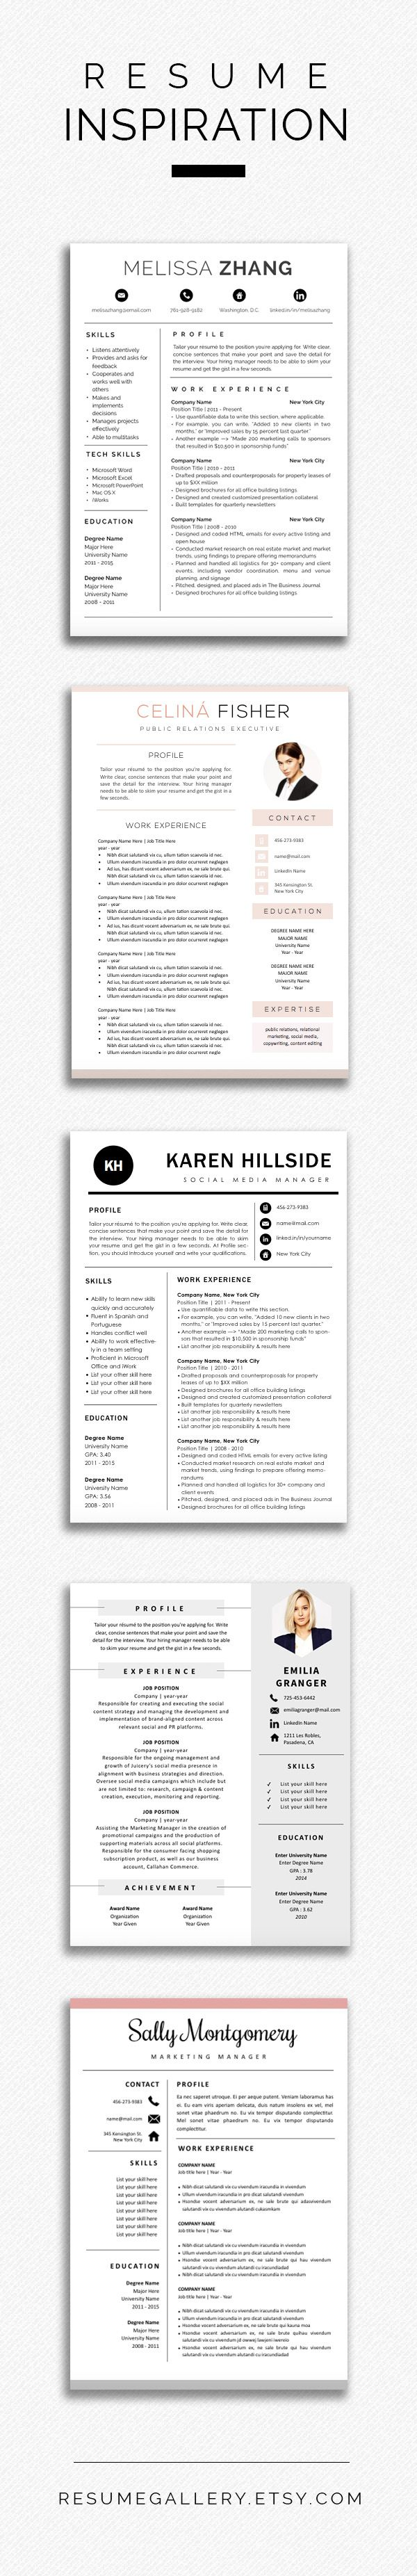 List Of Resume Skills Fascinating 42 Best Resume Writing Images On Pinterest  Gym Resume And Interview